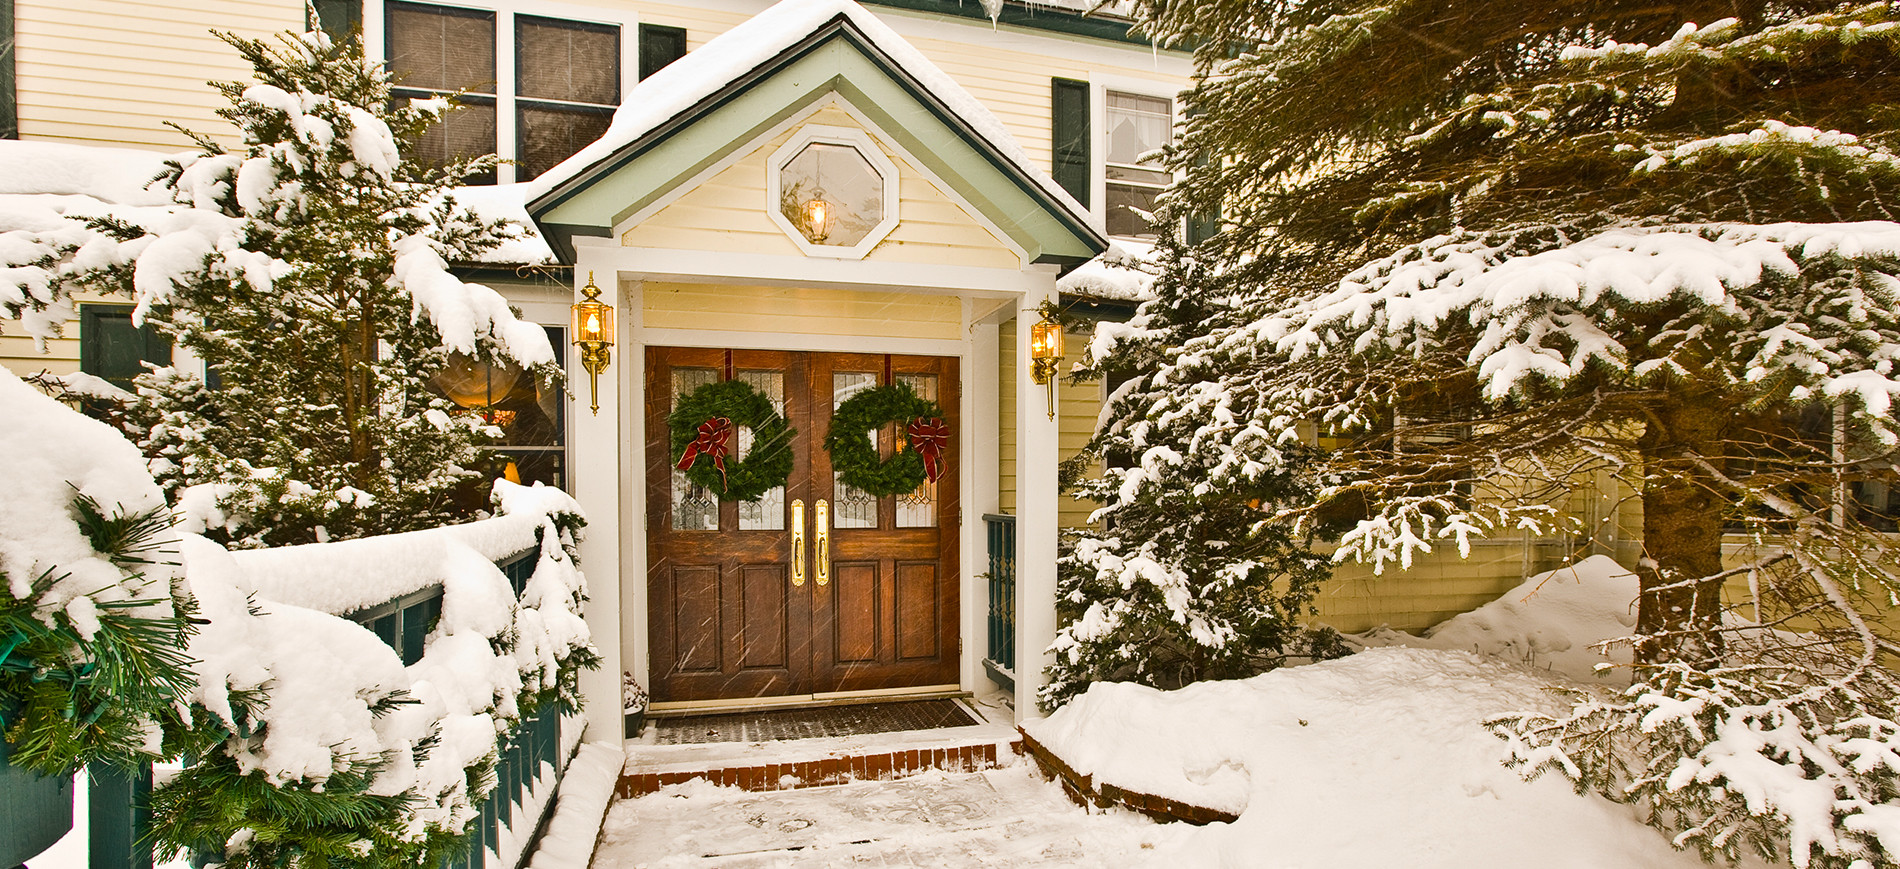 Inn at Ellis River portico & entry doors with wreaths in snow